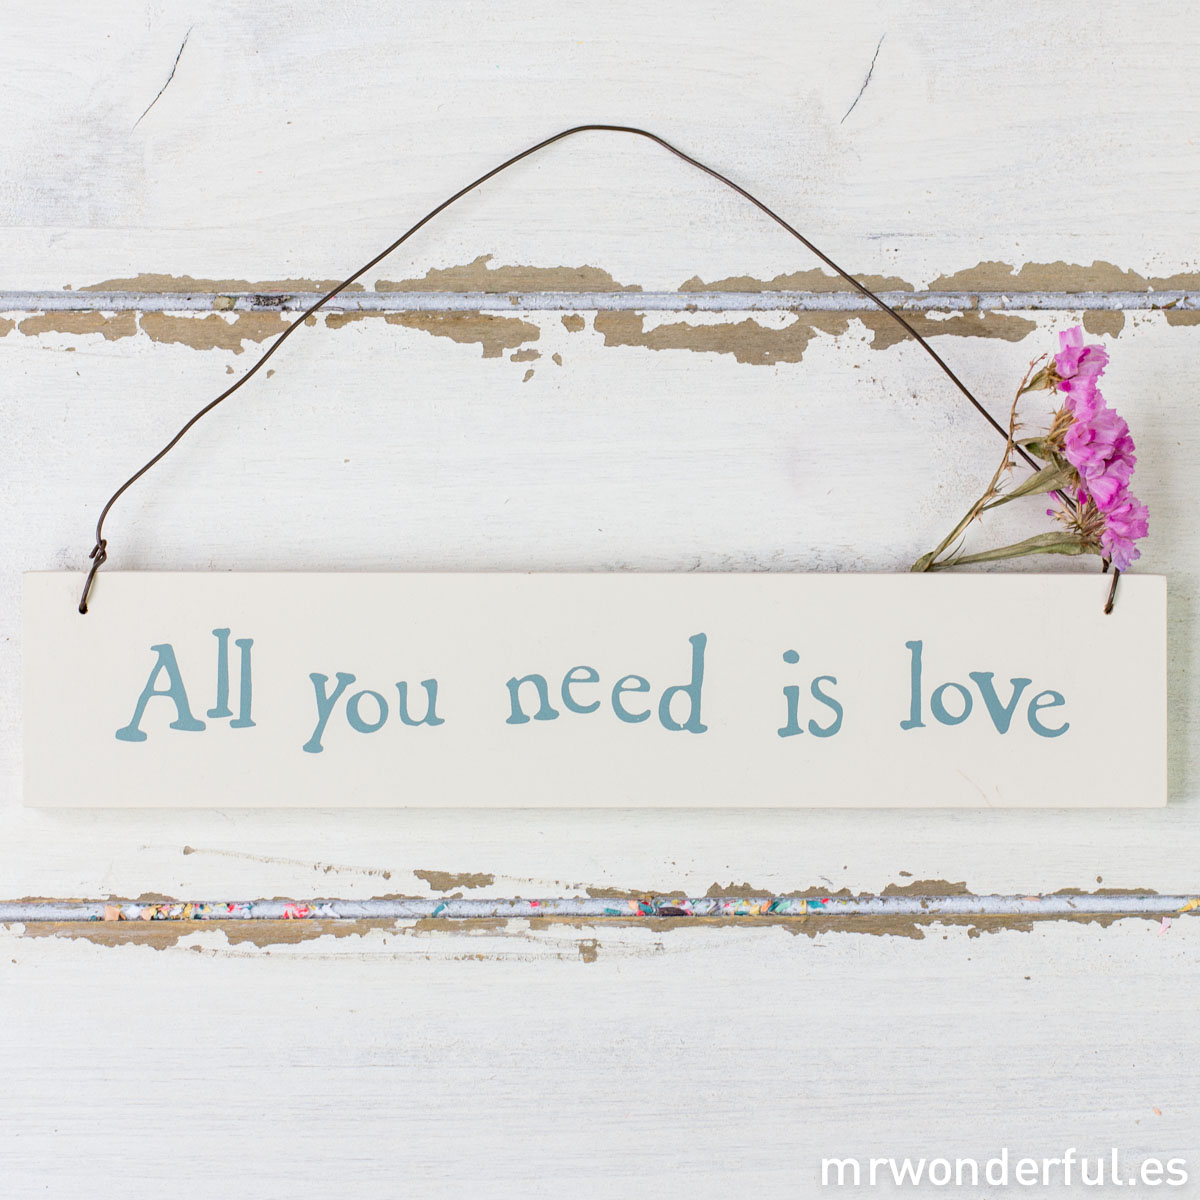 mrwonderful_867_cartel-madera-lavada_all-you-need-love-15-2